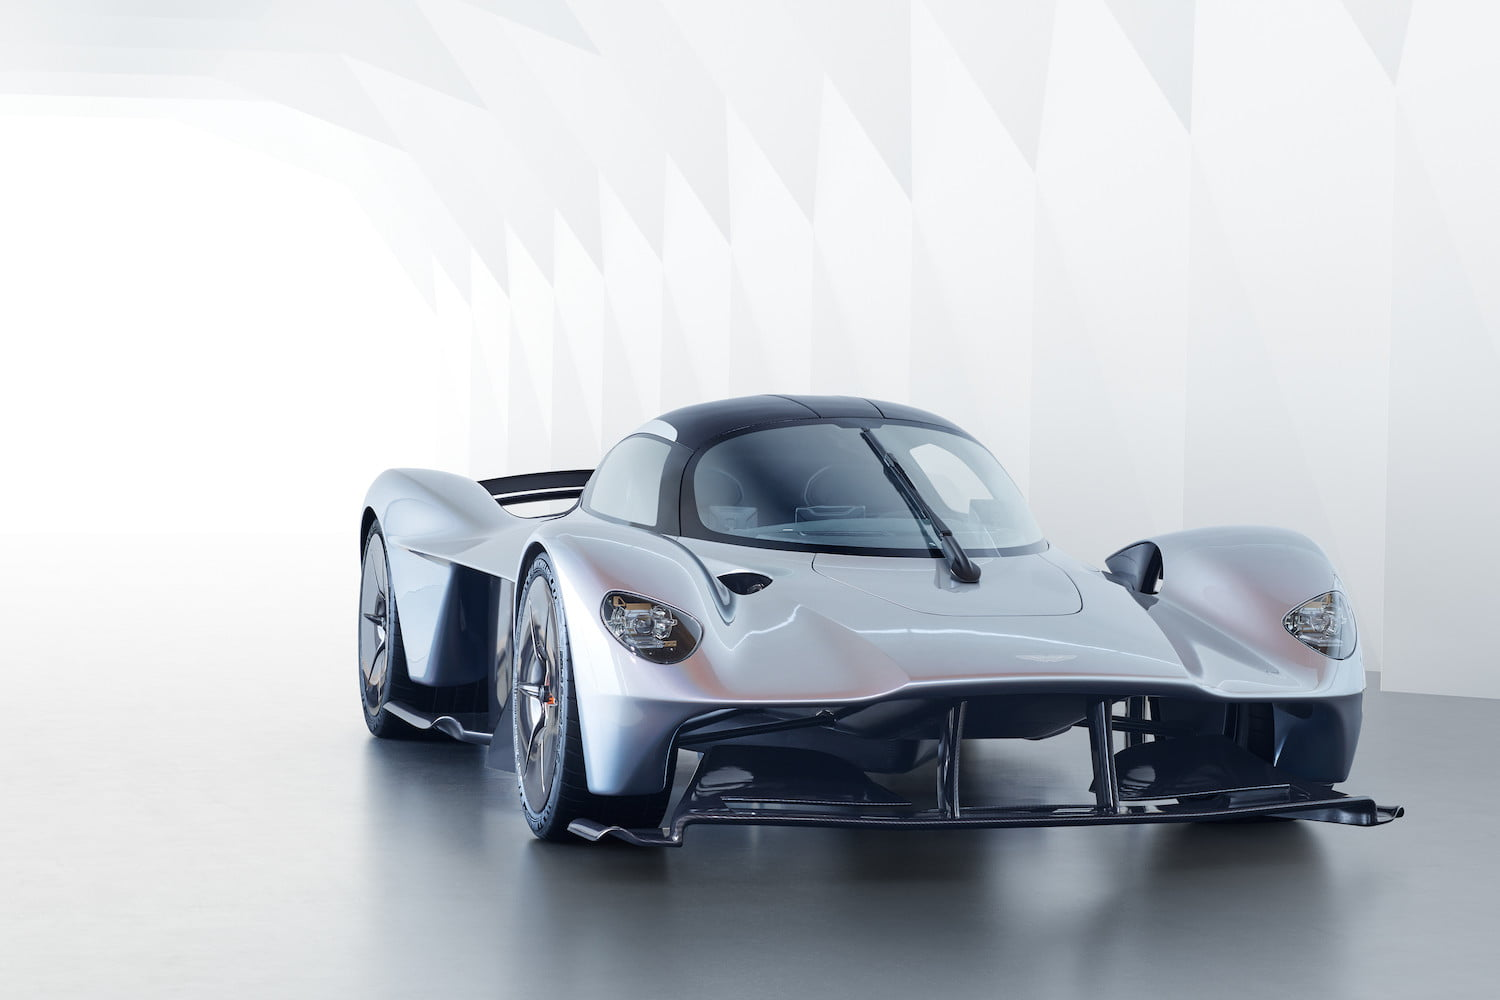 aston martin valkyrie details released | news, pictures, specs